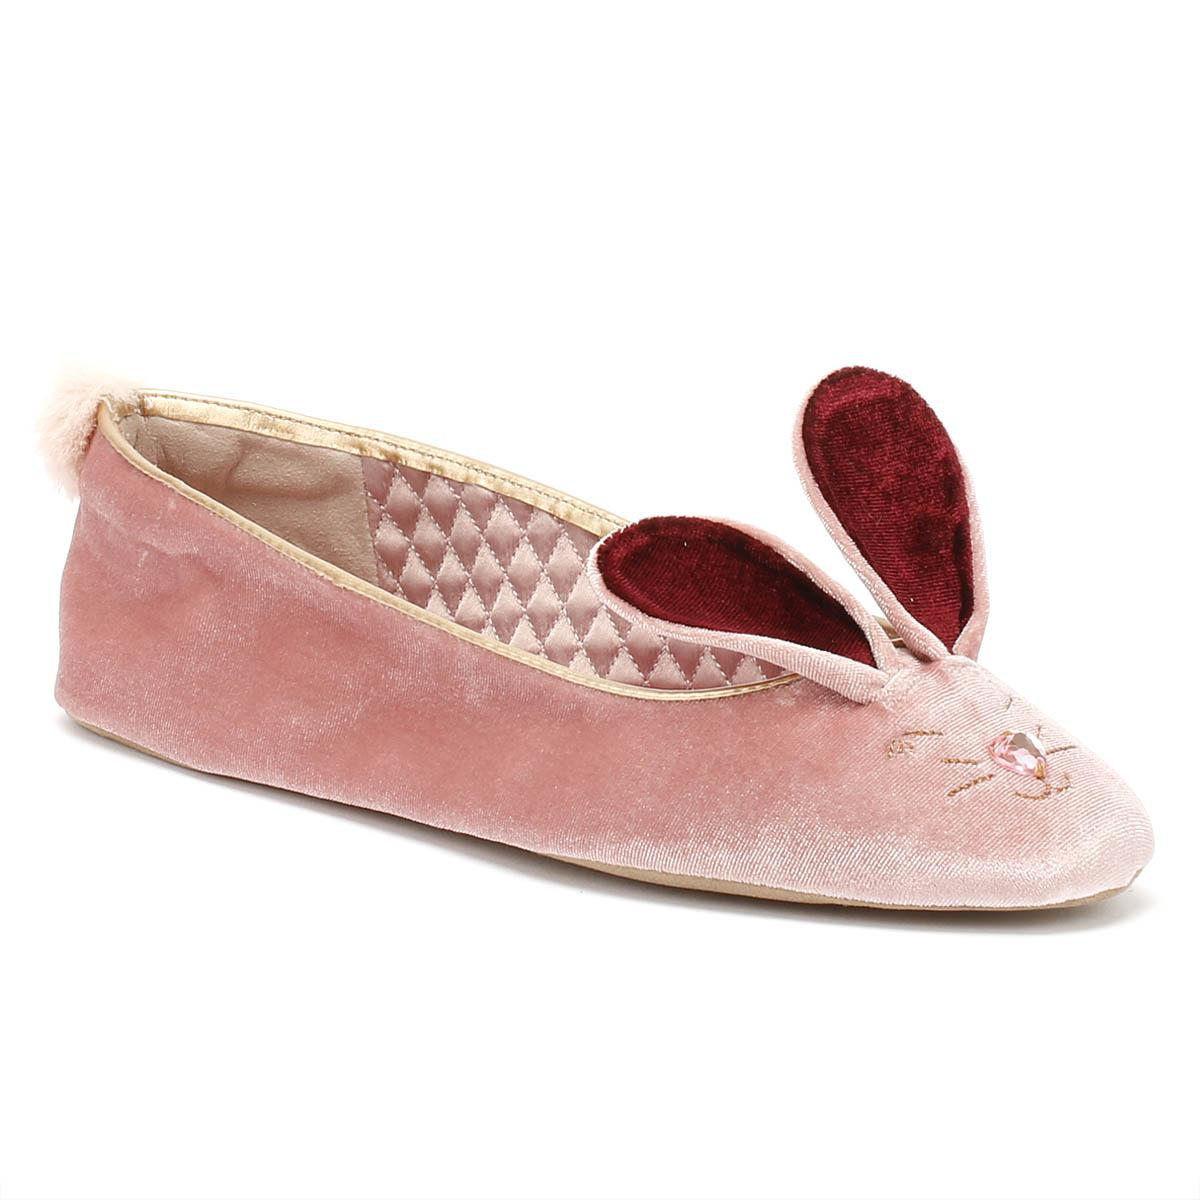 5ea179ecee7 Ted Baker Bhunni Womens Rose Slippers in Pink - Lyst